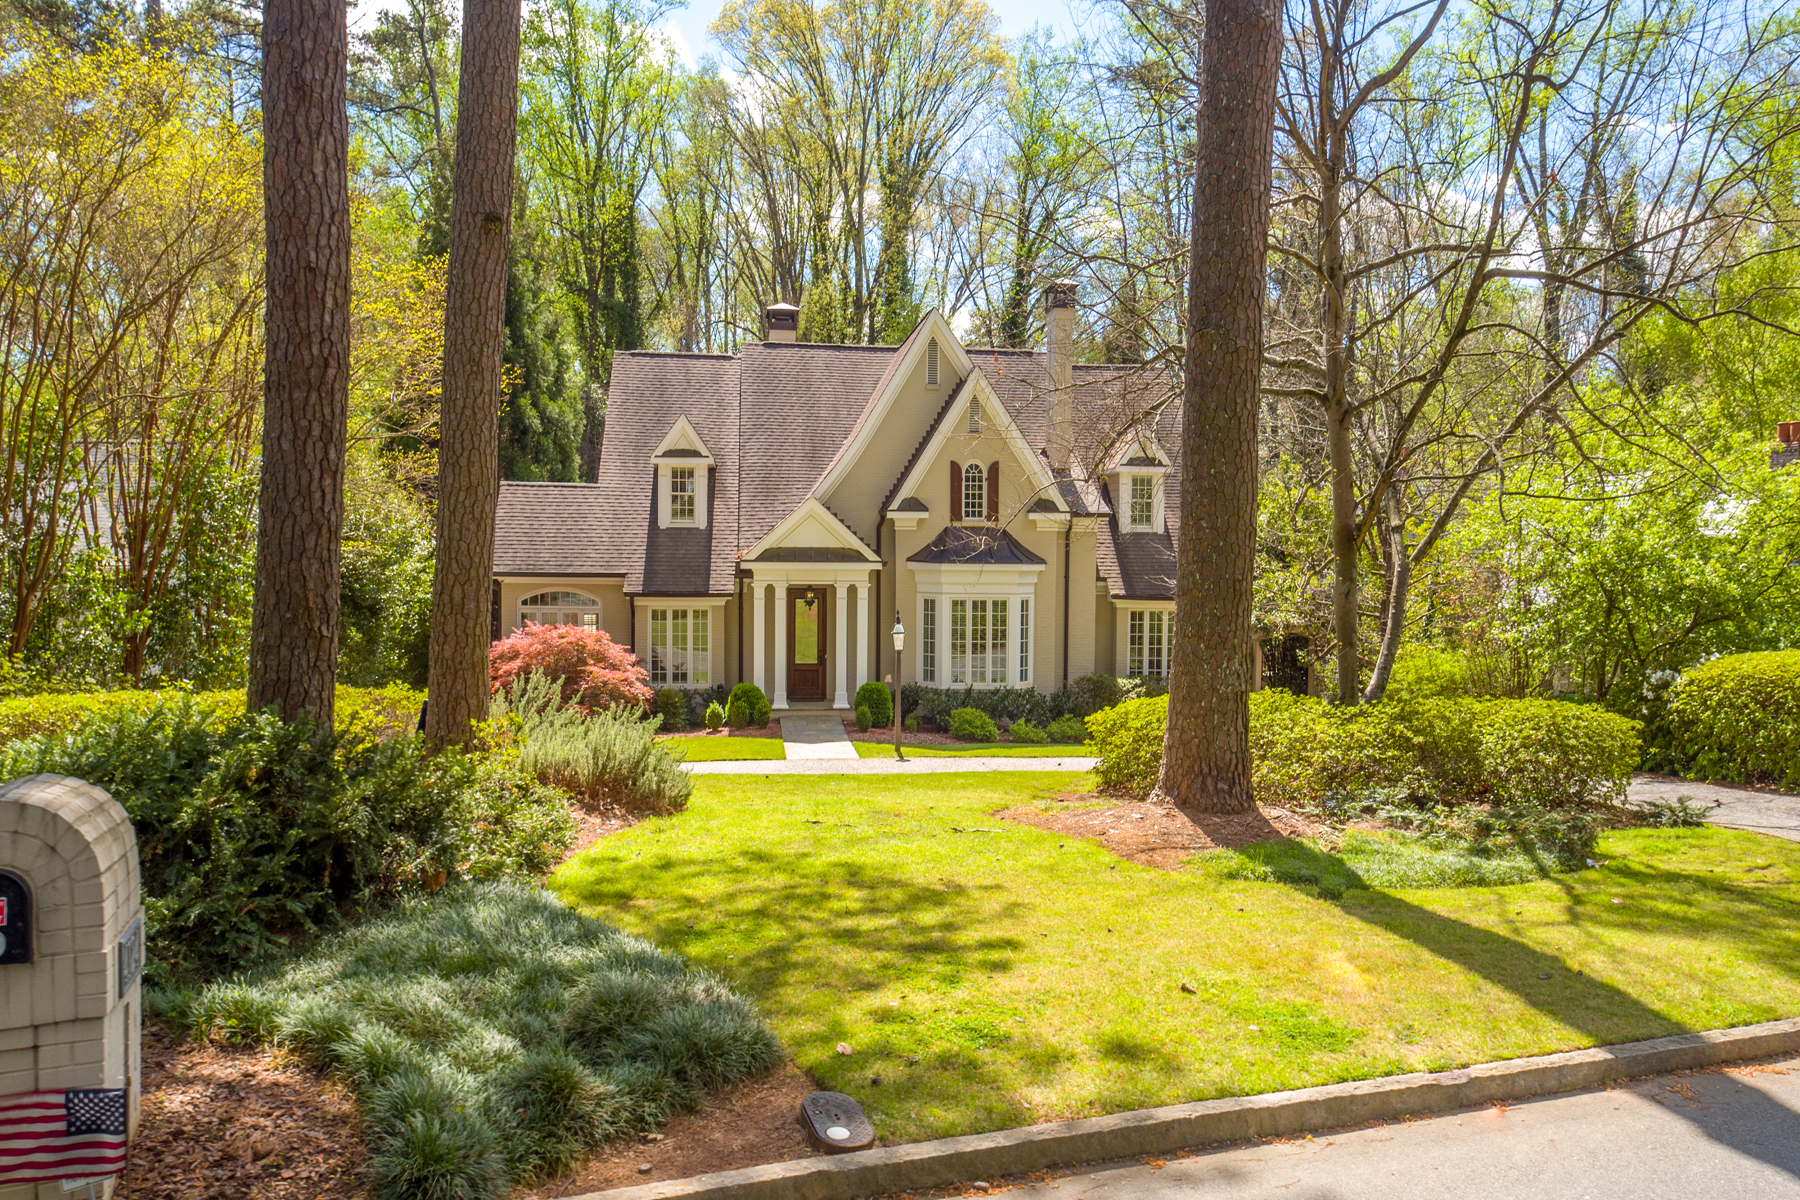 단독 가정 주택 용 매매 에 Gorgeous Home In Ideal Brookhaven Location 4124 Club Drive Brookhaven, Atlanta, 조지아, 30319 미국